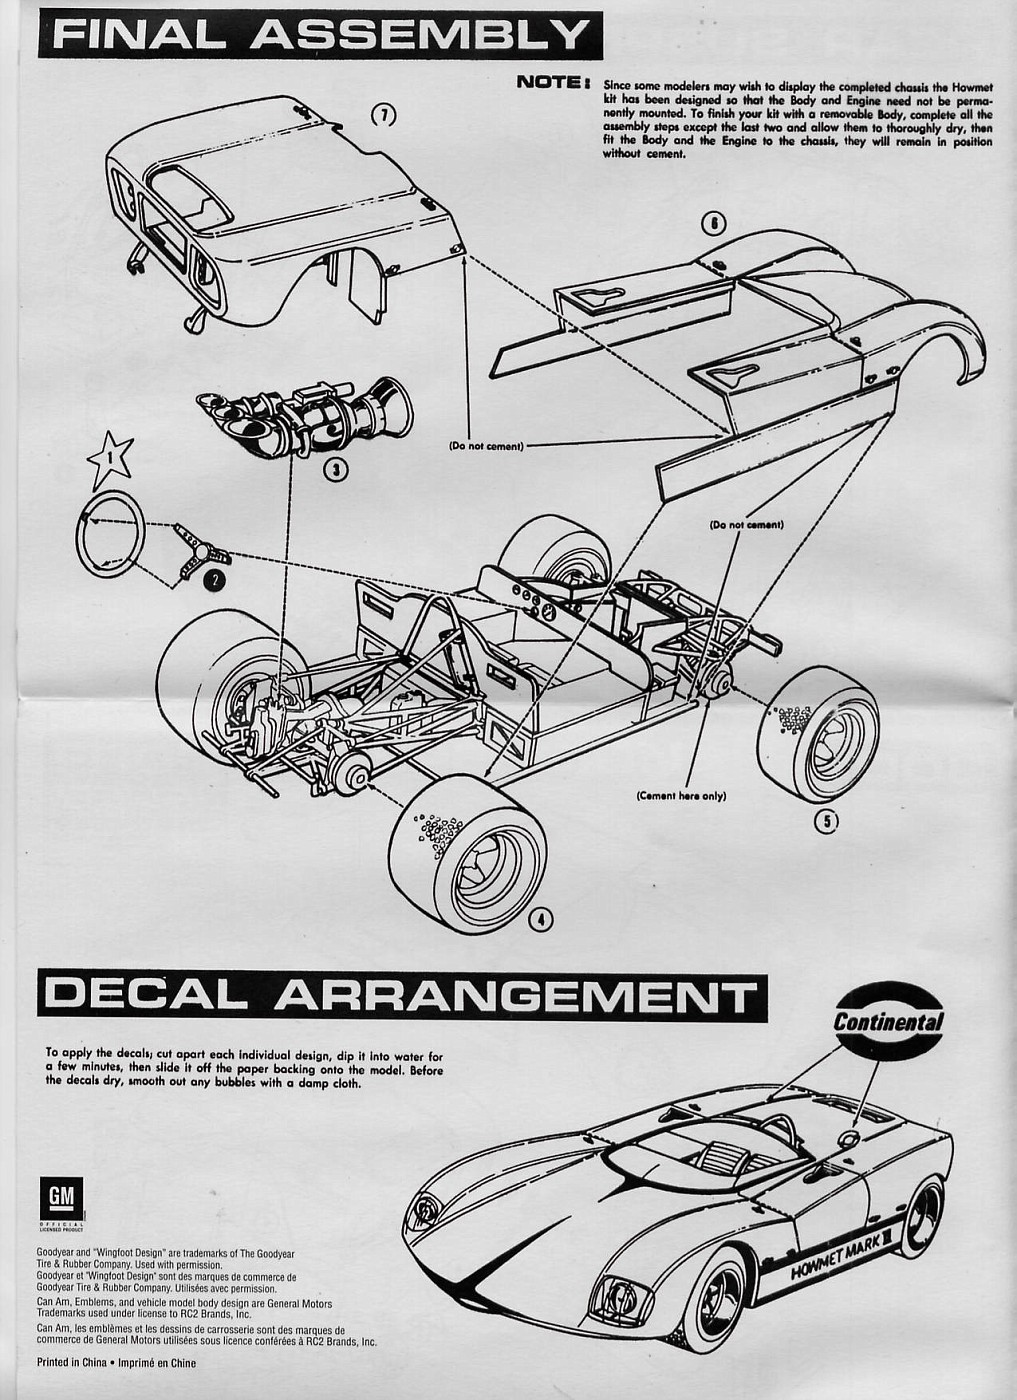 7f9im Craftsman Model 247 88691 26 Snow Blower Will in addition Showthread likewise Boeing Plans 9yWIOC39rg 7CMyInJGqkCD3ZCcae5elBgaX7k77BoEHQ likewise Plan details likewise Ramjet Engine Working Model. on build a model jet engine